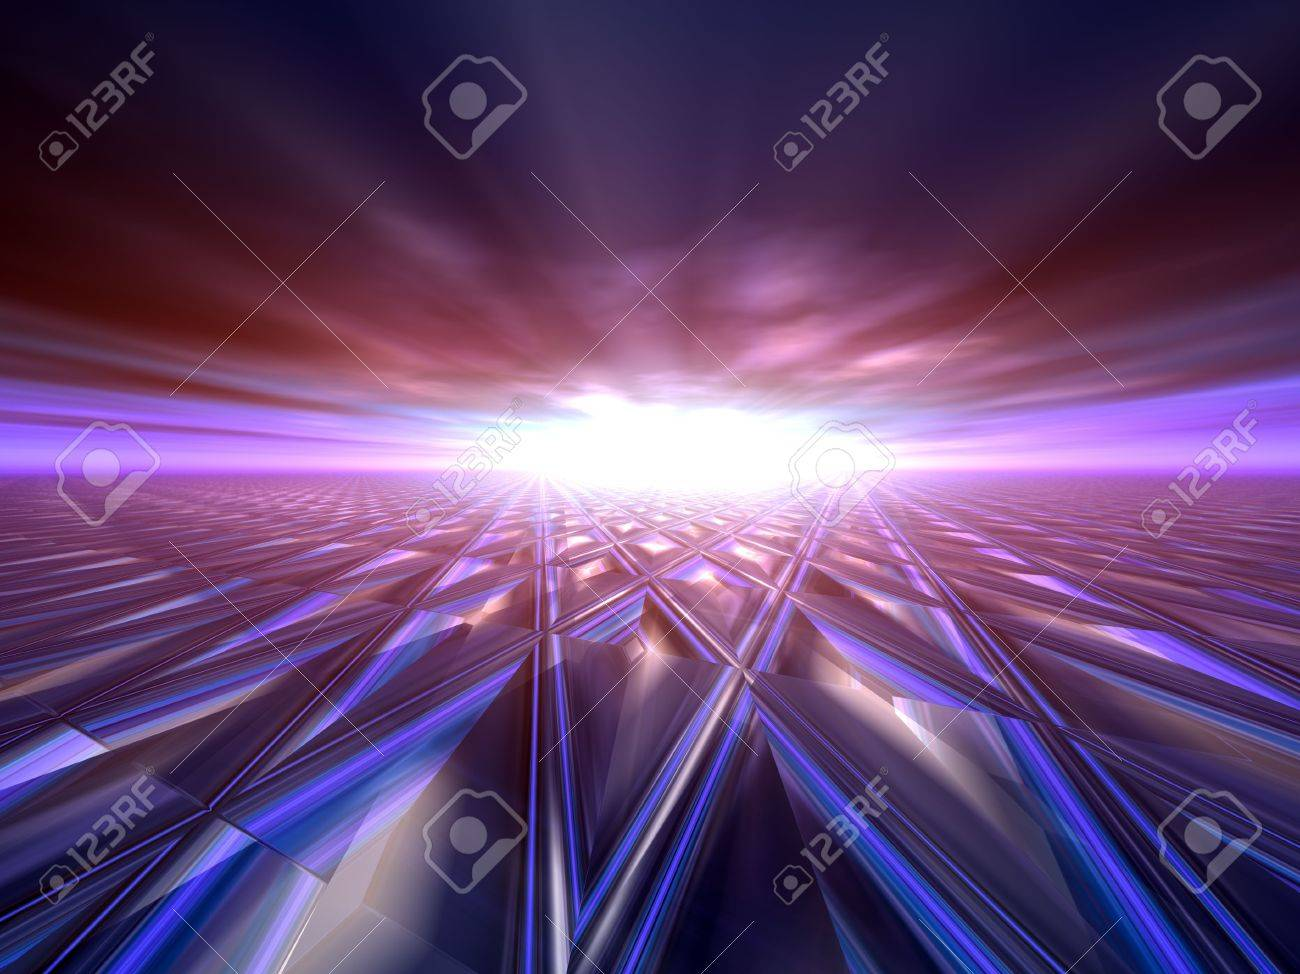 An abstract illustration background of a bright star flash on a grunge criss cross target grid horizon. Stock Illustration - 6125808